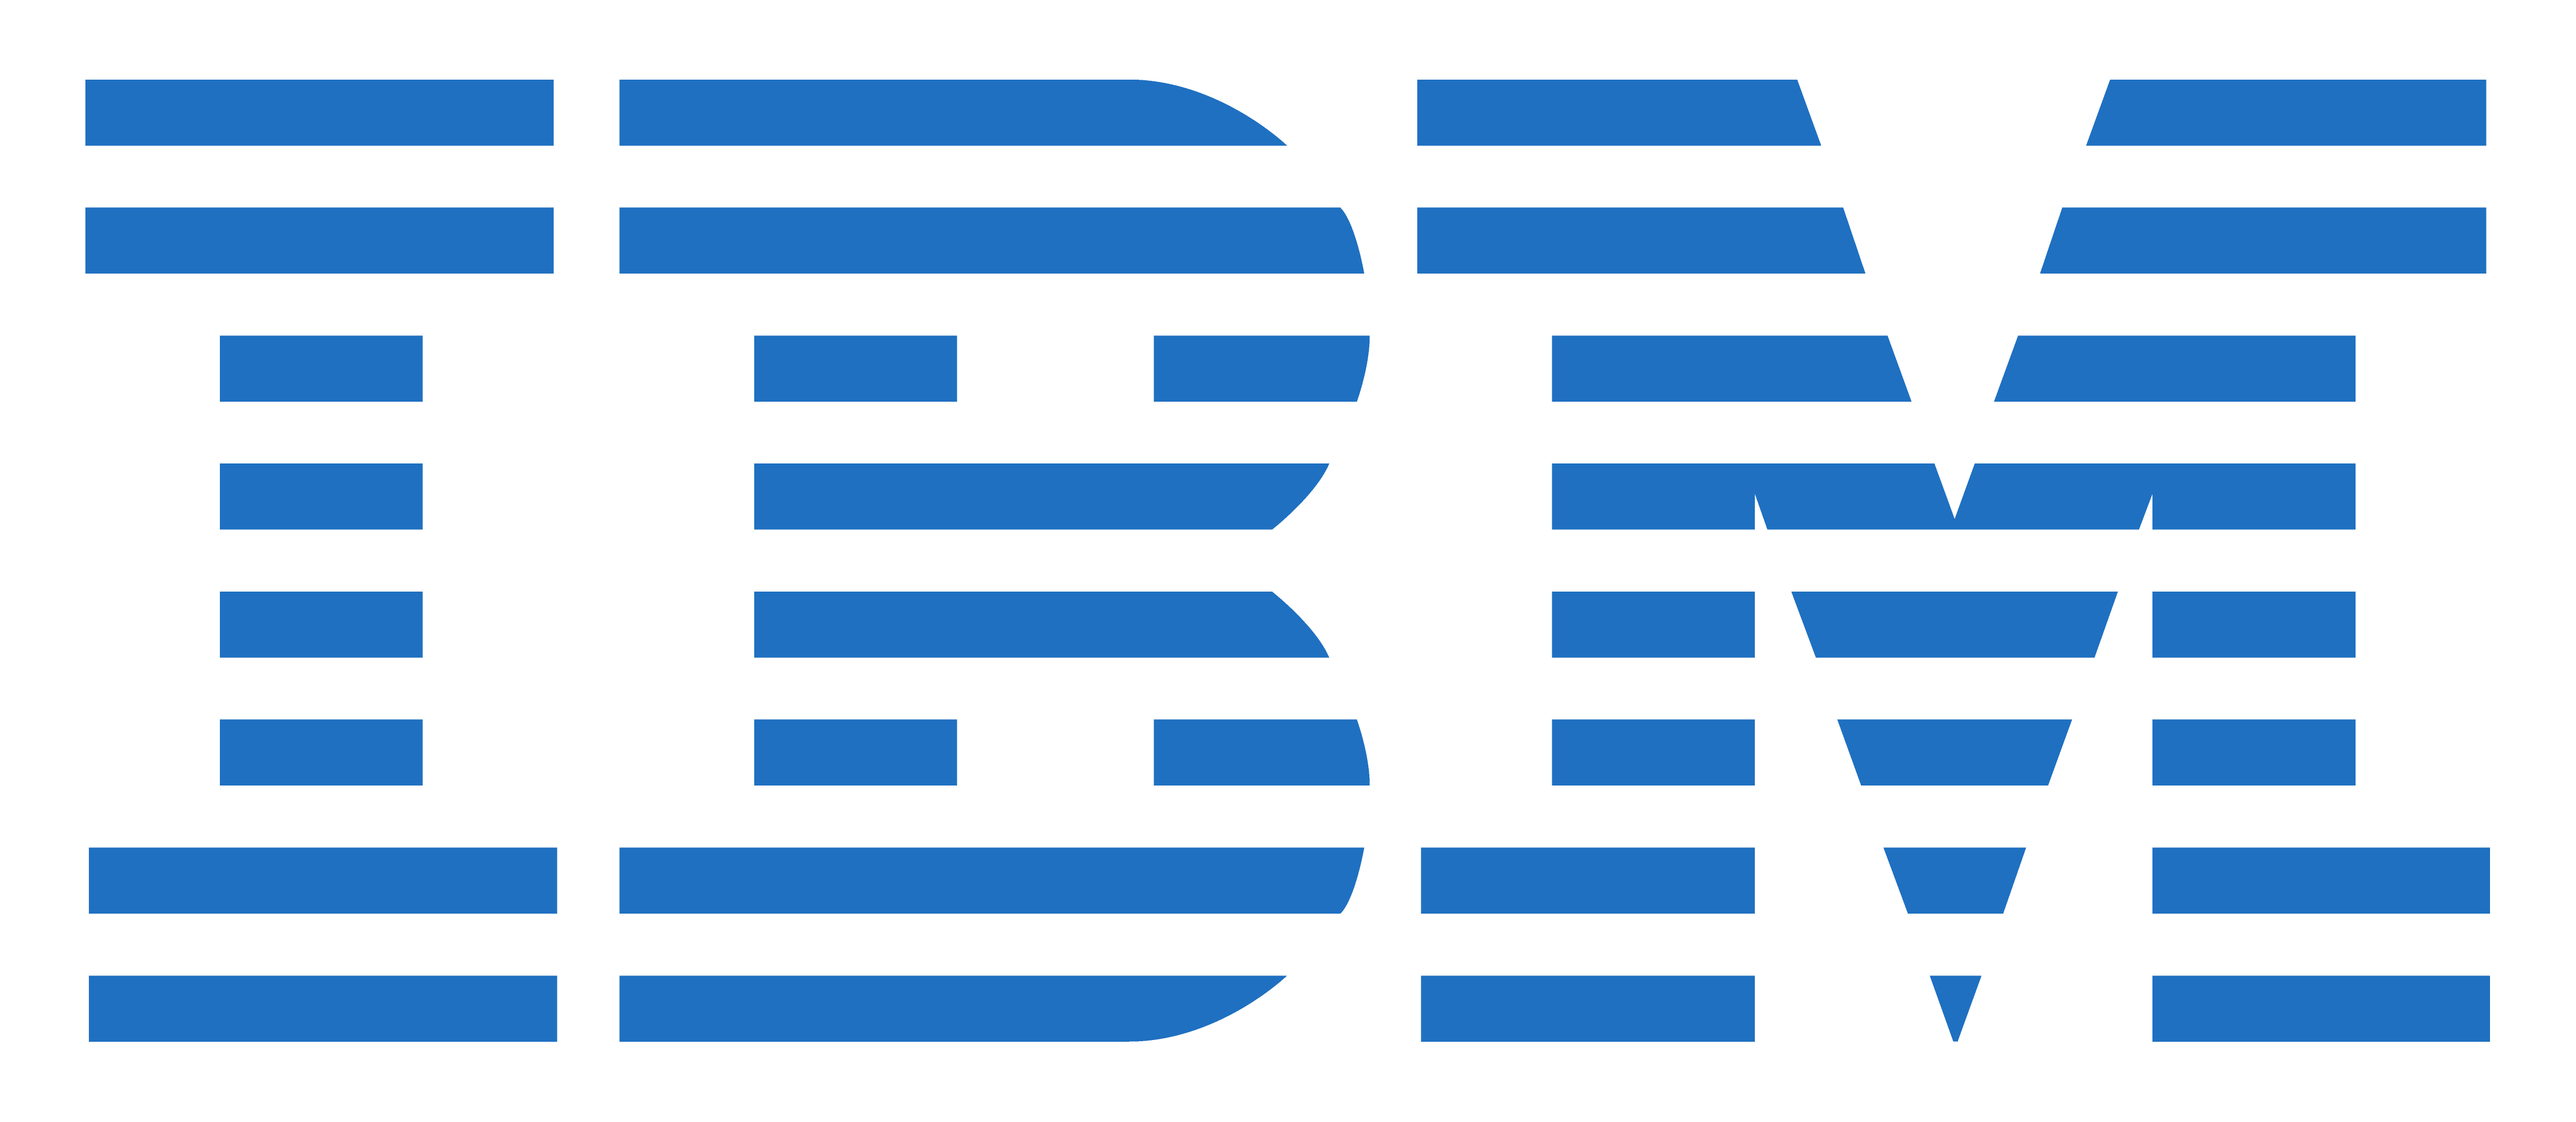 Nom : ibmlogo-s4il2j9lwy.png Affichages : 661 Taille : 51,0 Ko